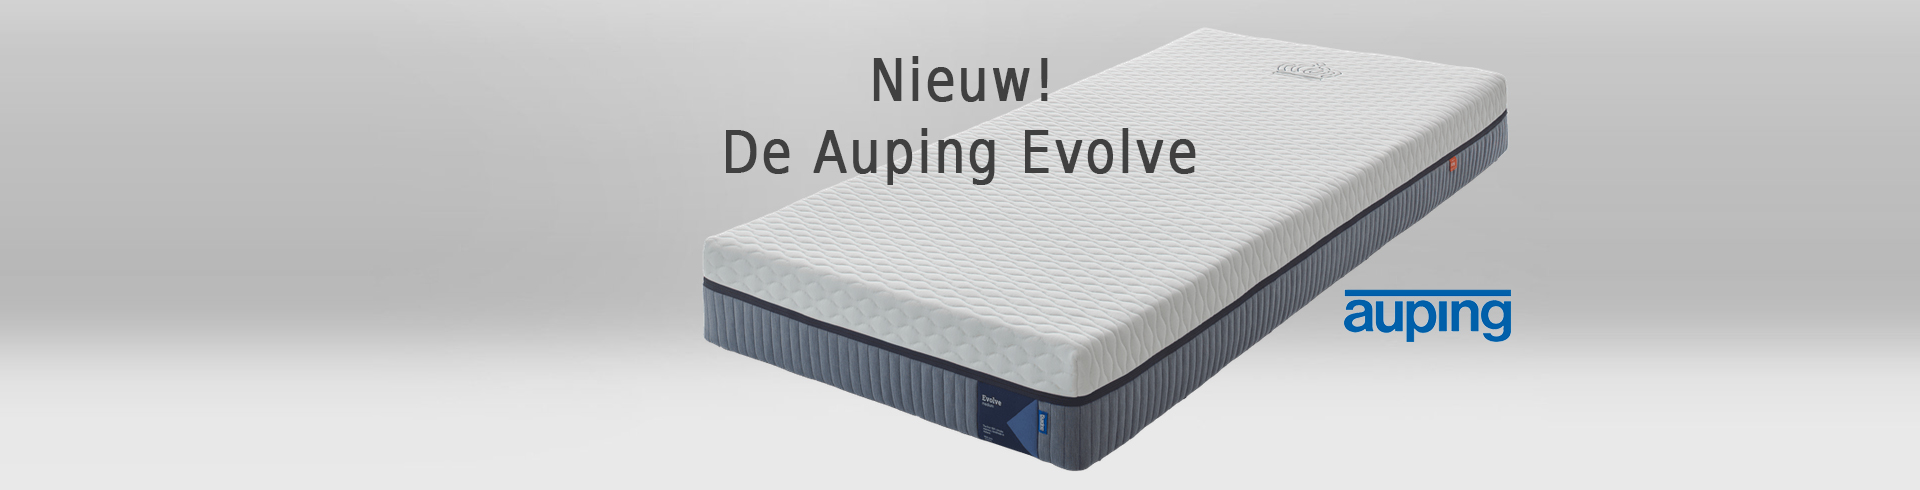 Auping Evolve